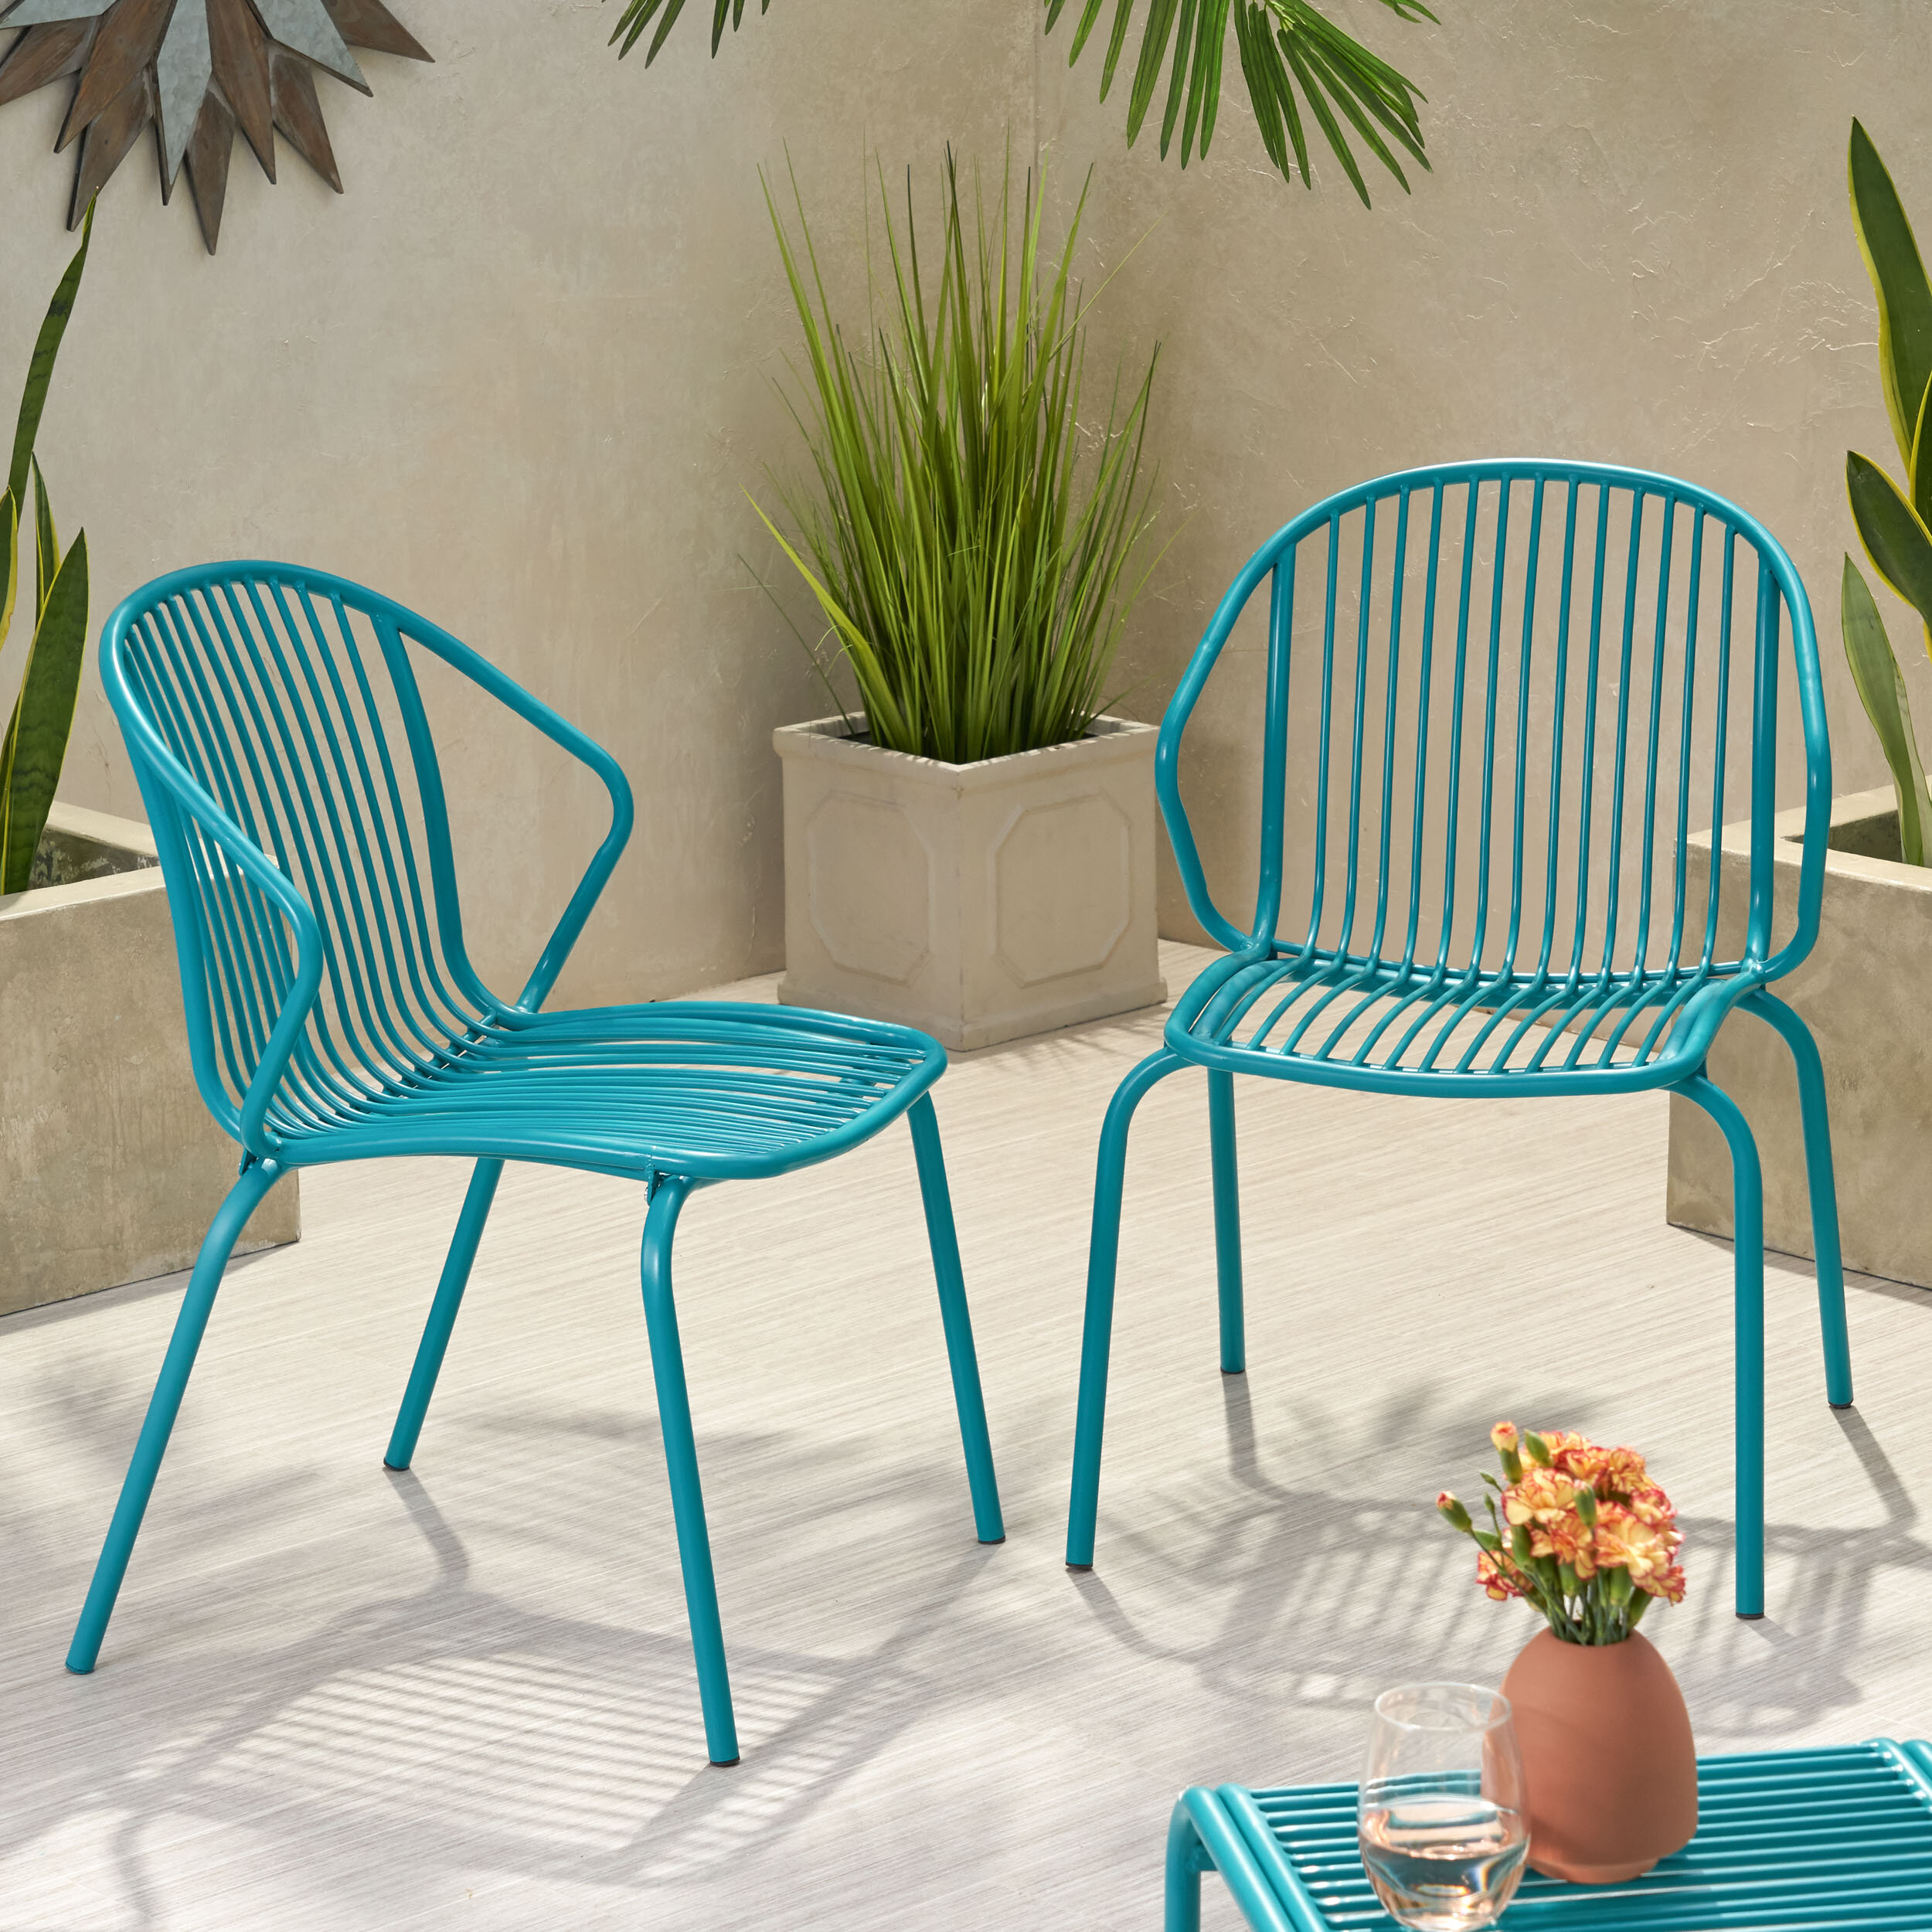 Corbeil Outdoor Modern Patio Chair